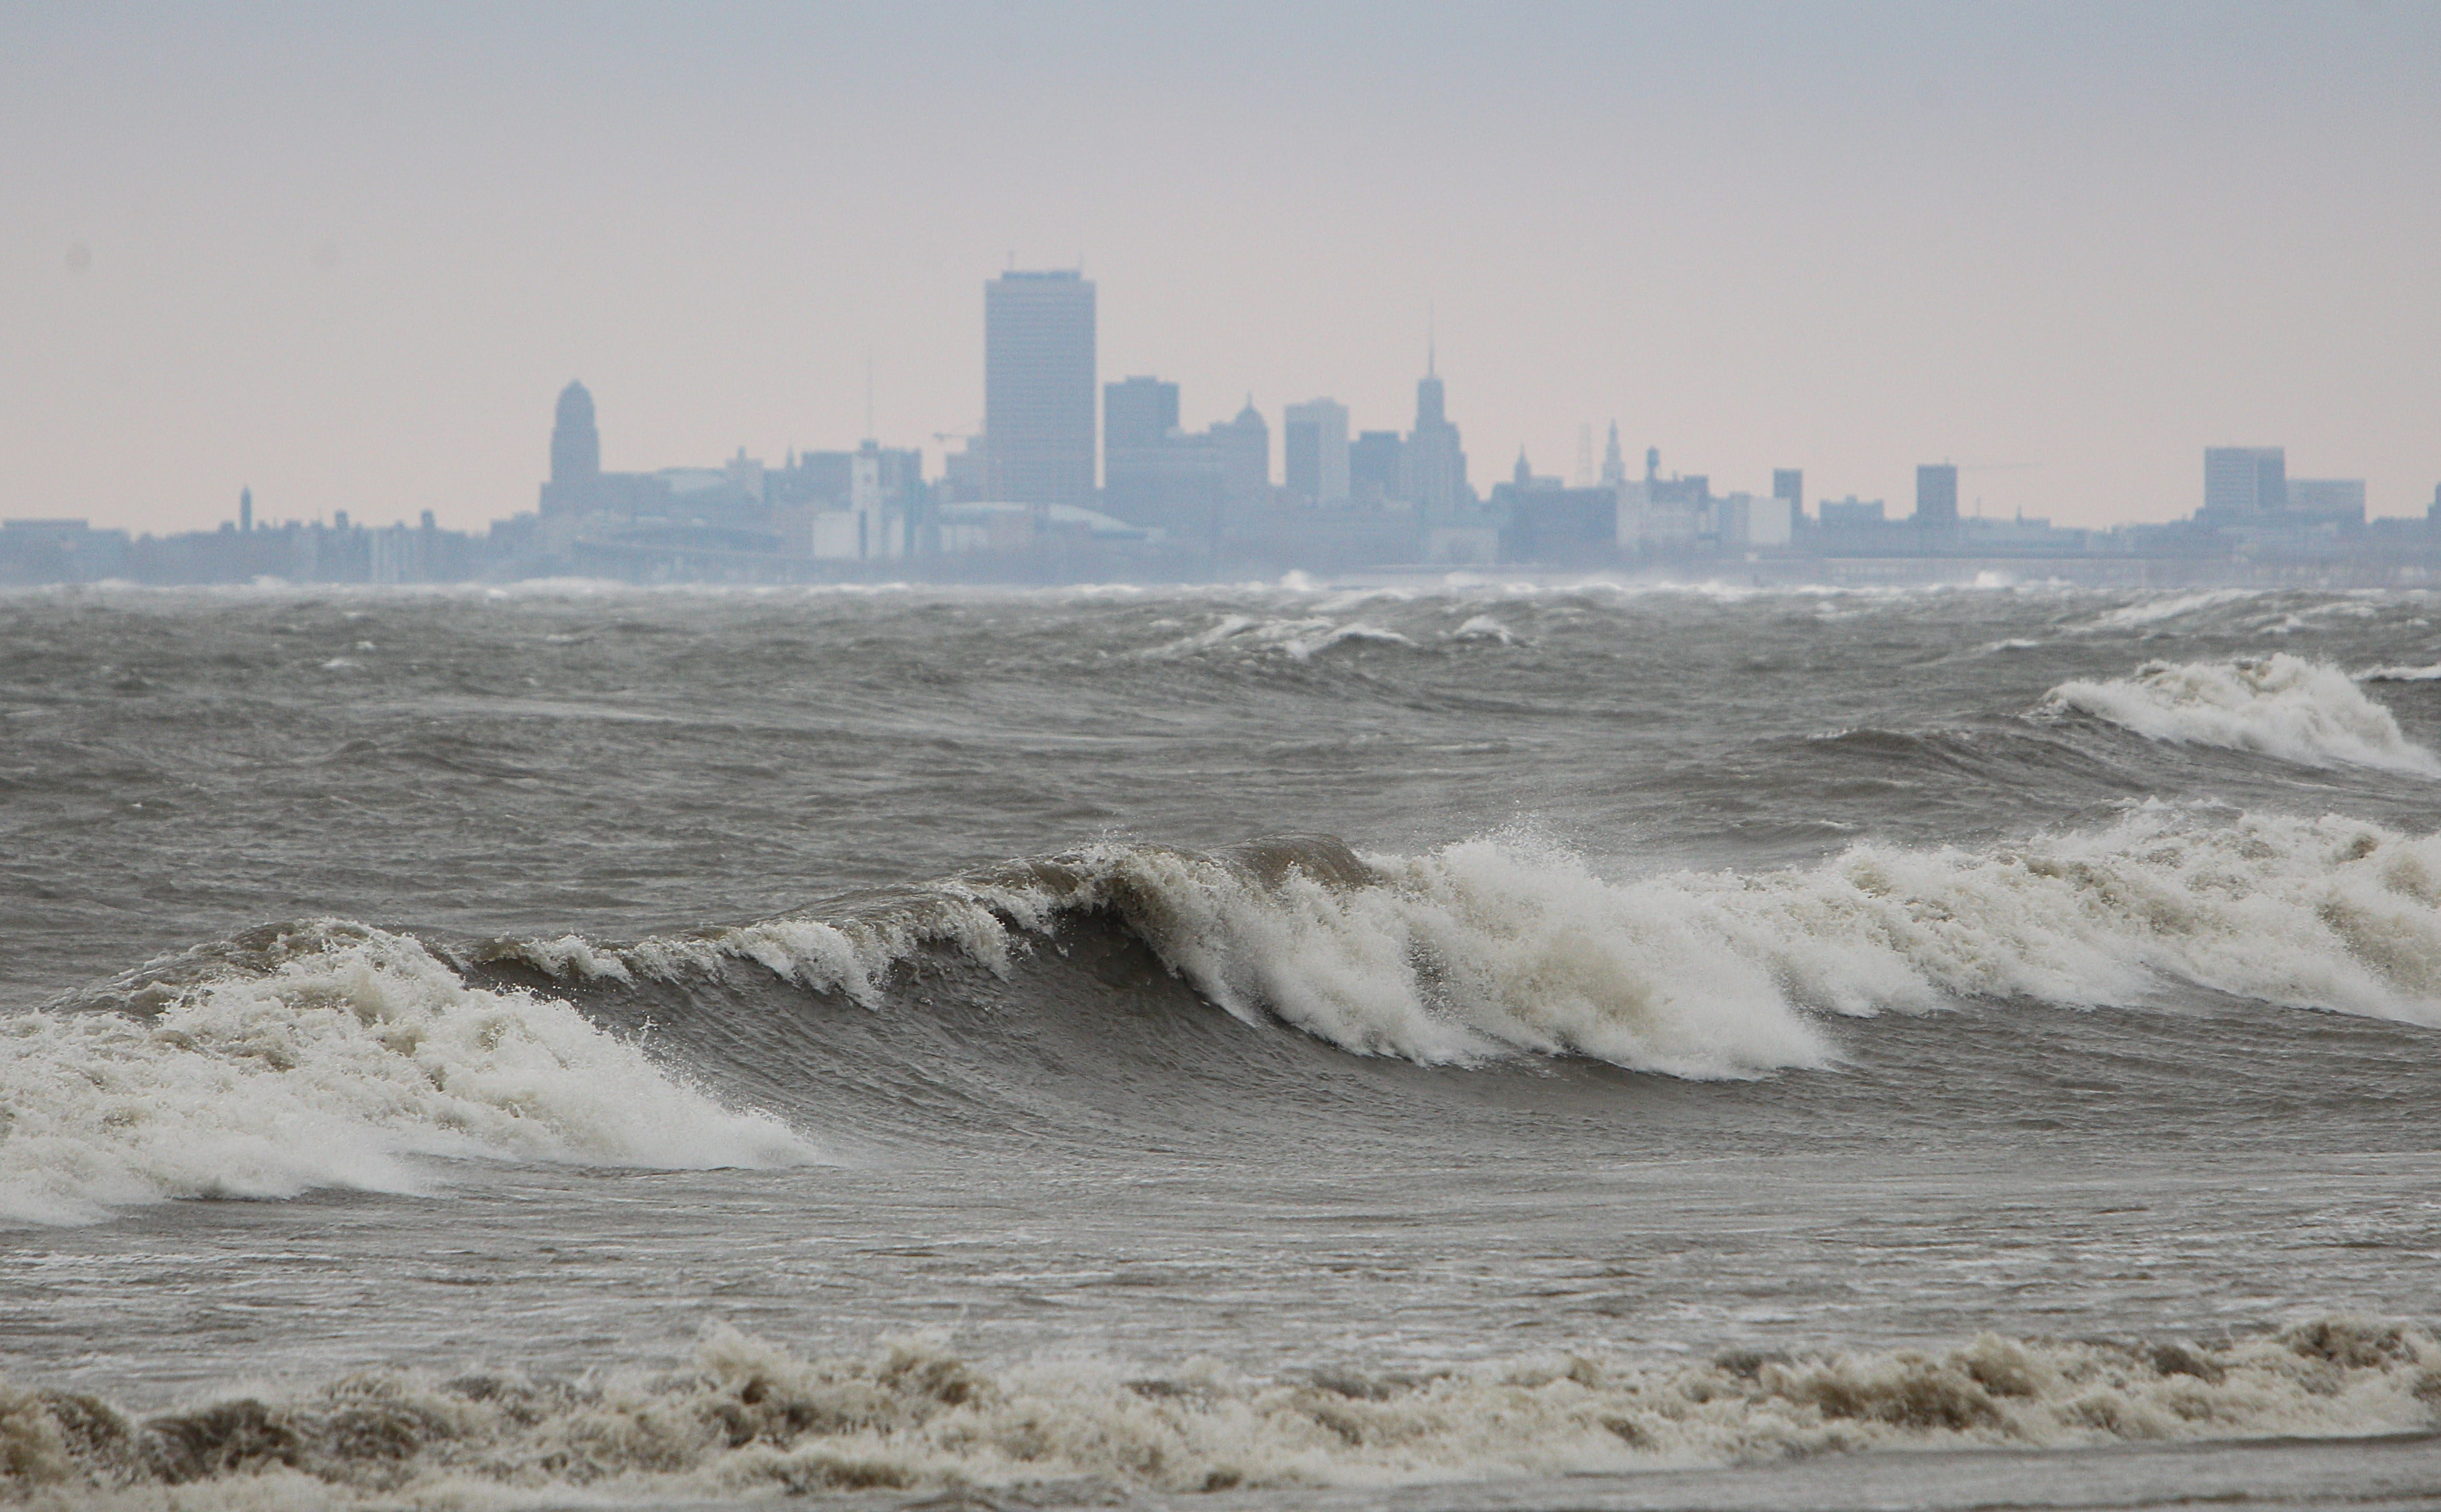 The Great Lakes Restoration Initiative is one of several federal programs that will see funding restored or increased under an emerging budget deal in Washington.